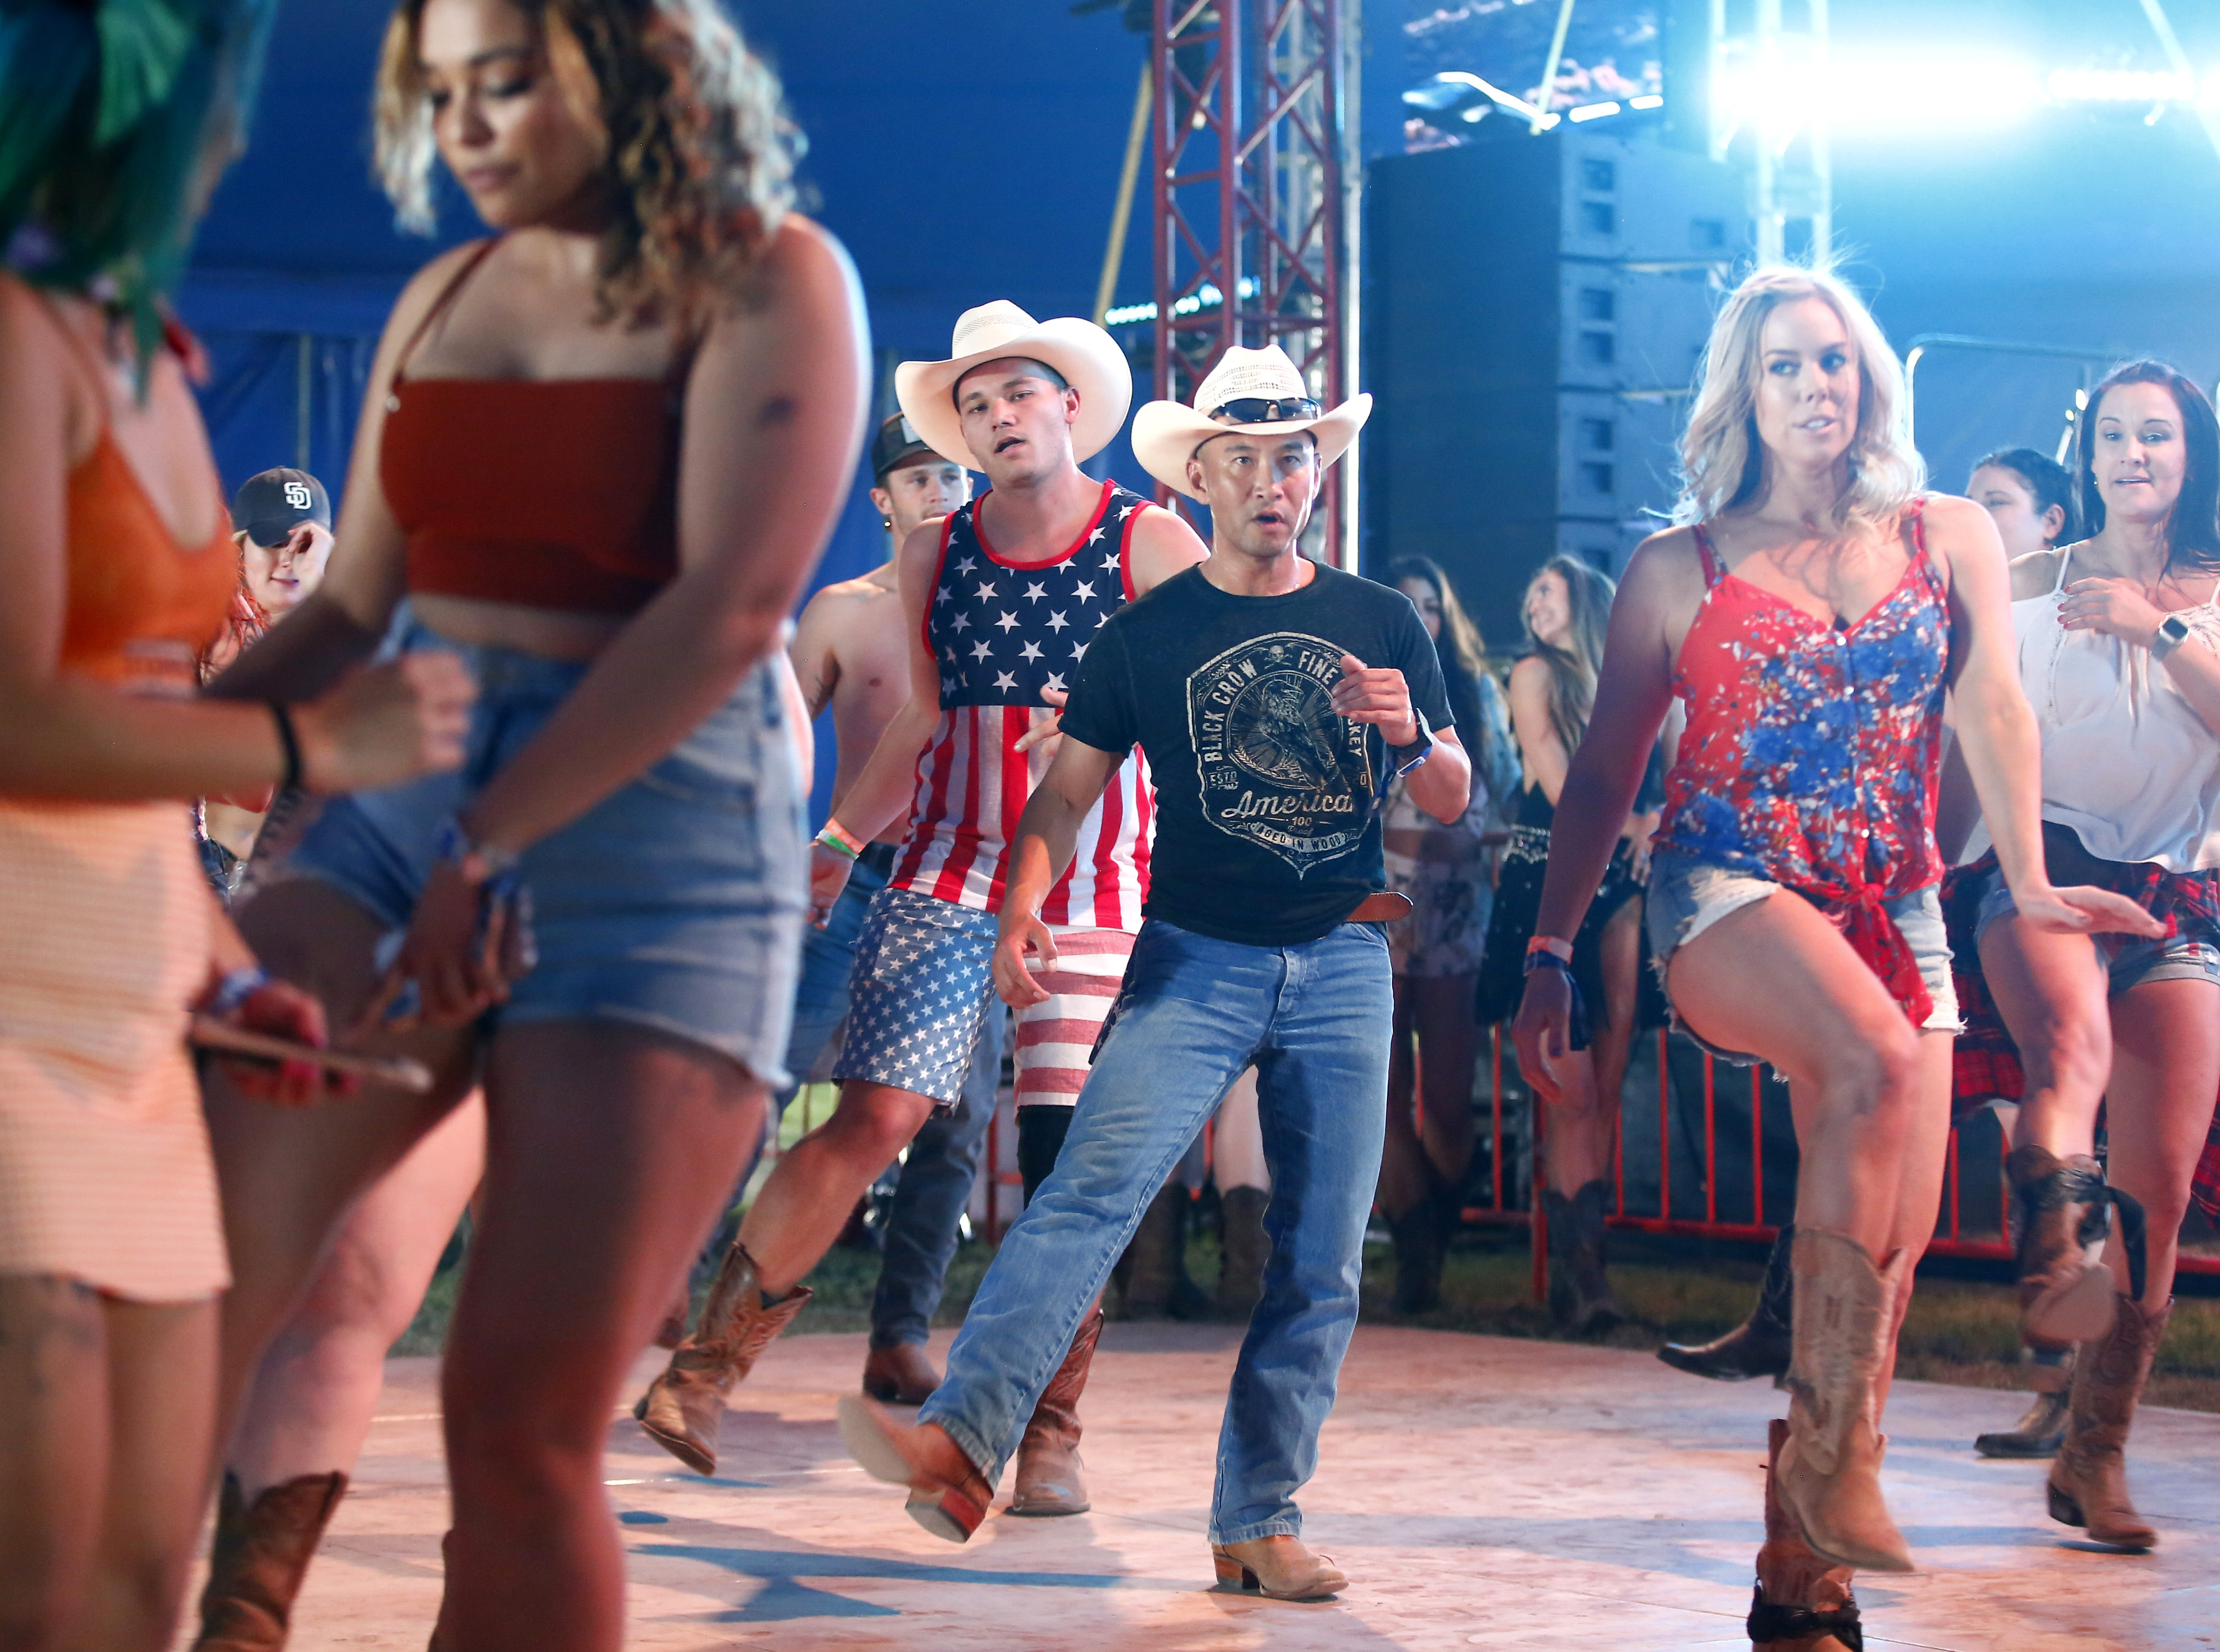 Fans dance during Country Thunder in Florence, Ariz., on Friday, April 12, 2019.